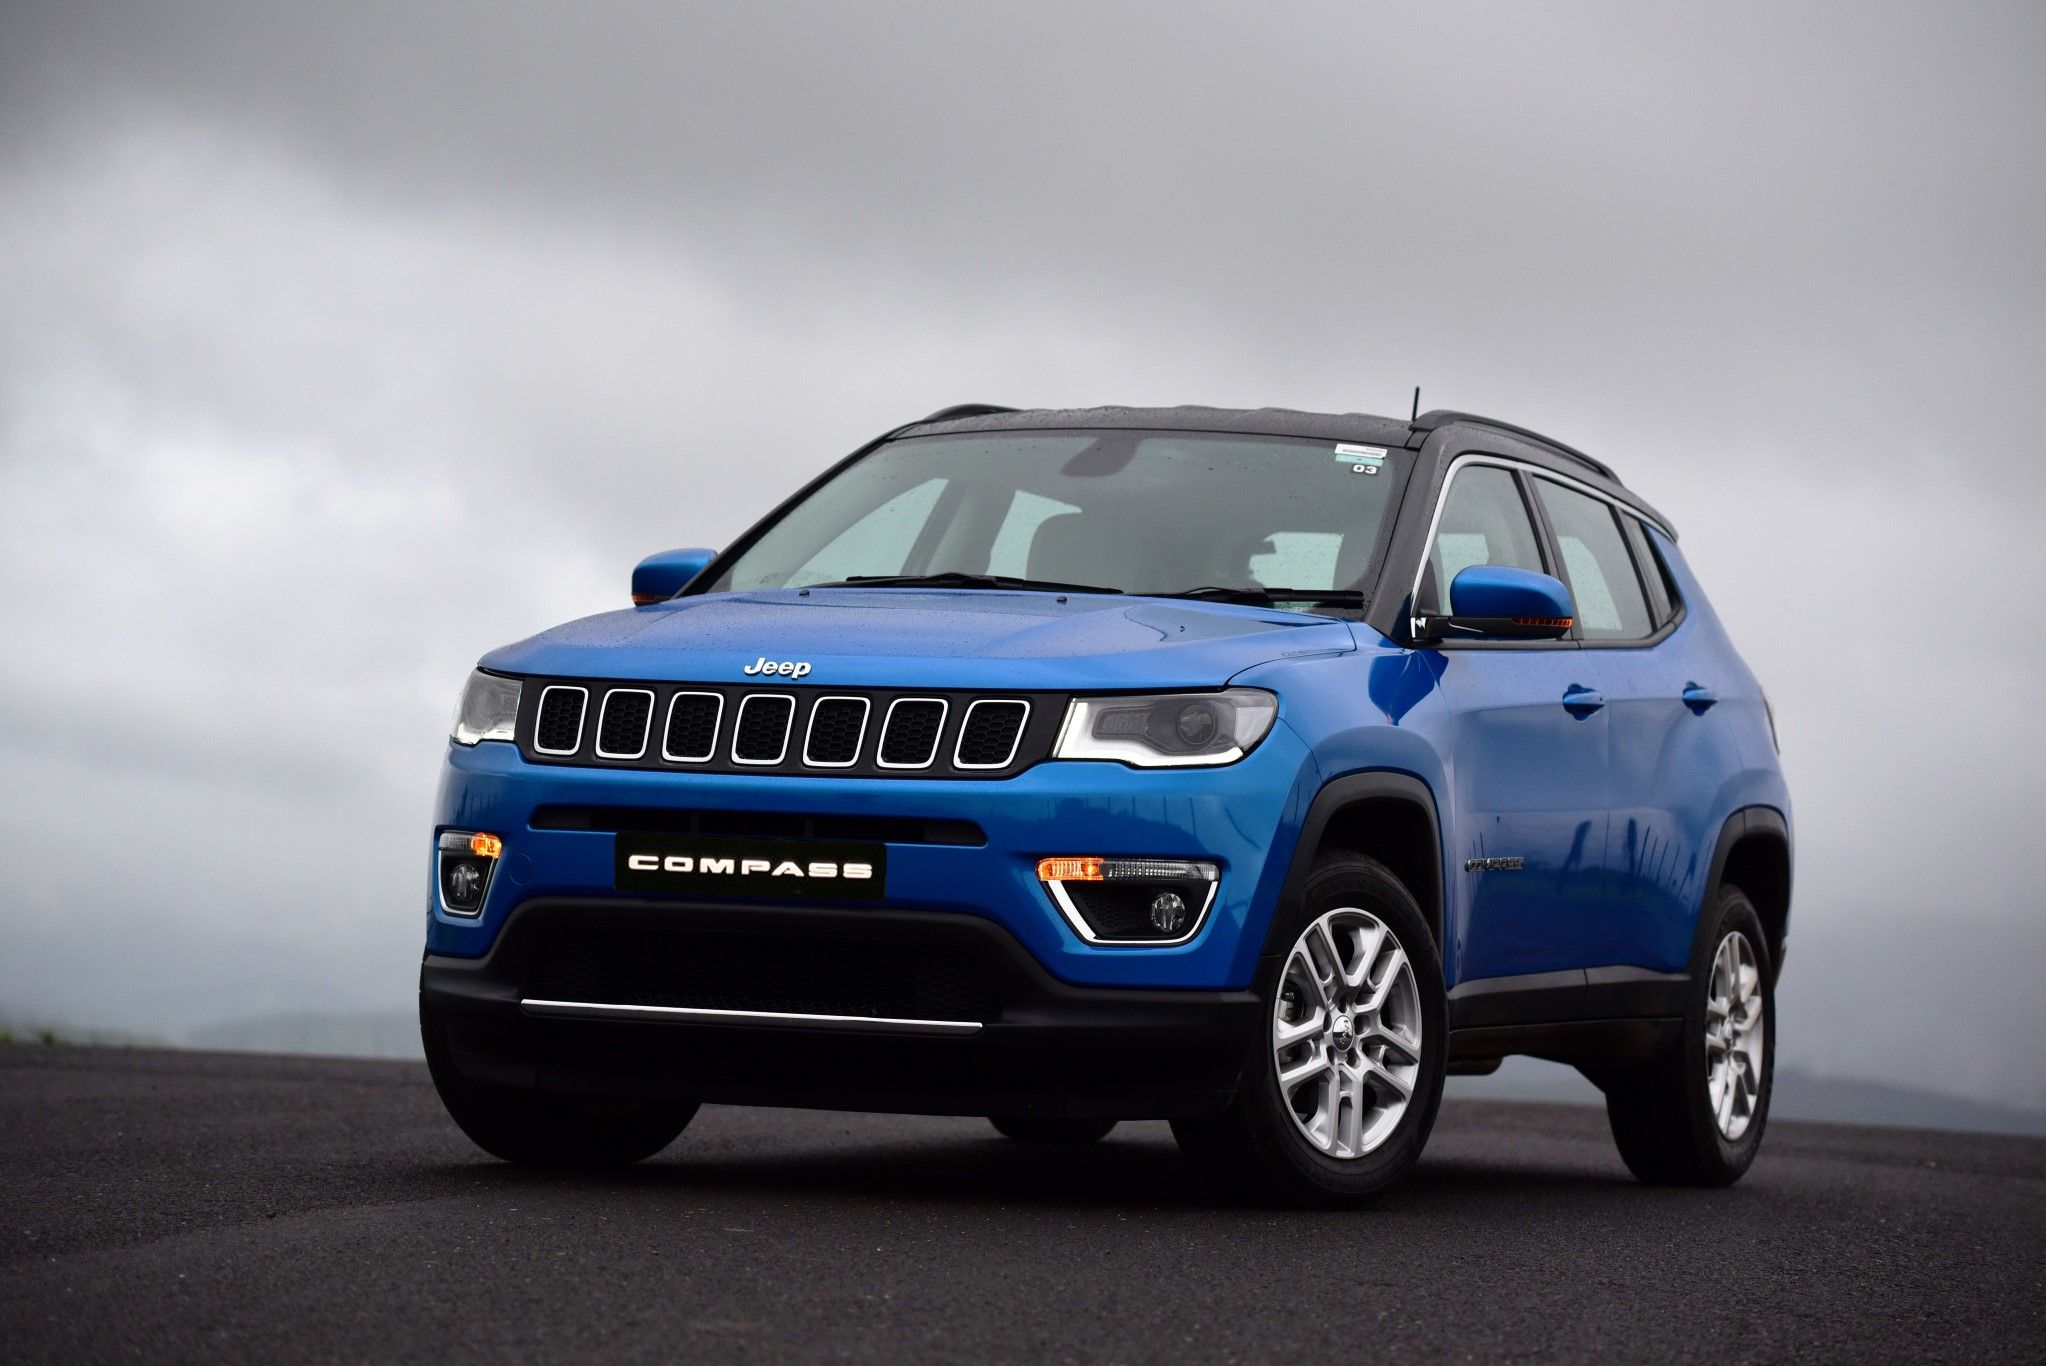 What Makes The Jeep Compass The Suv We All Want With Images Jeep Compass Jeep Suv